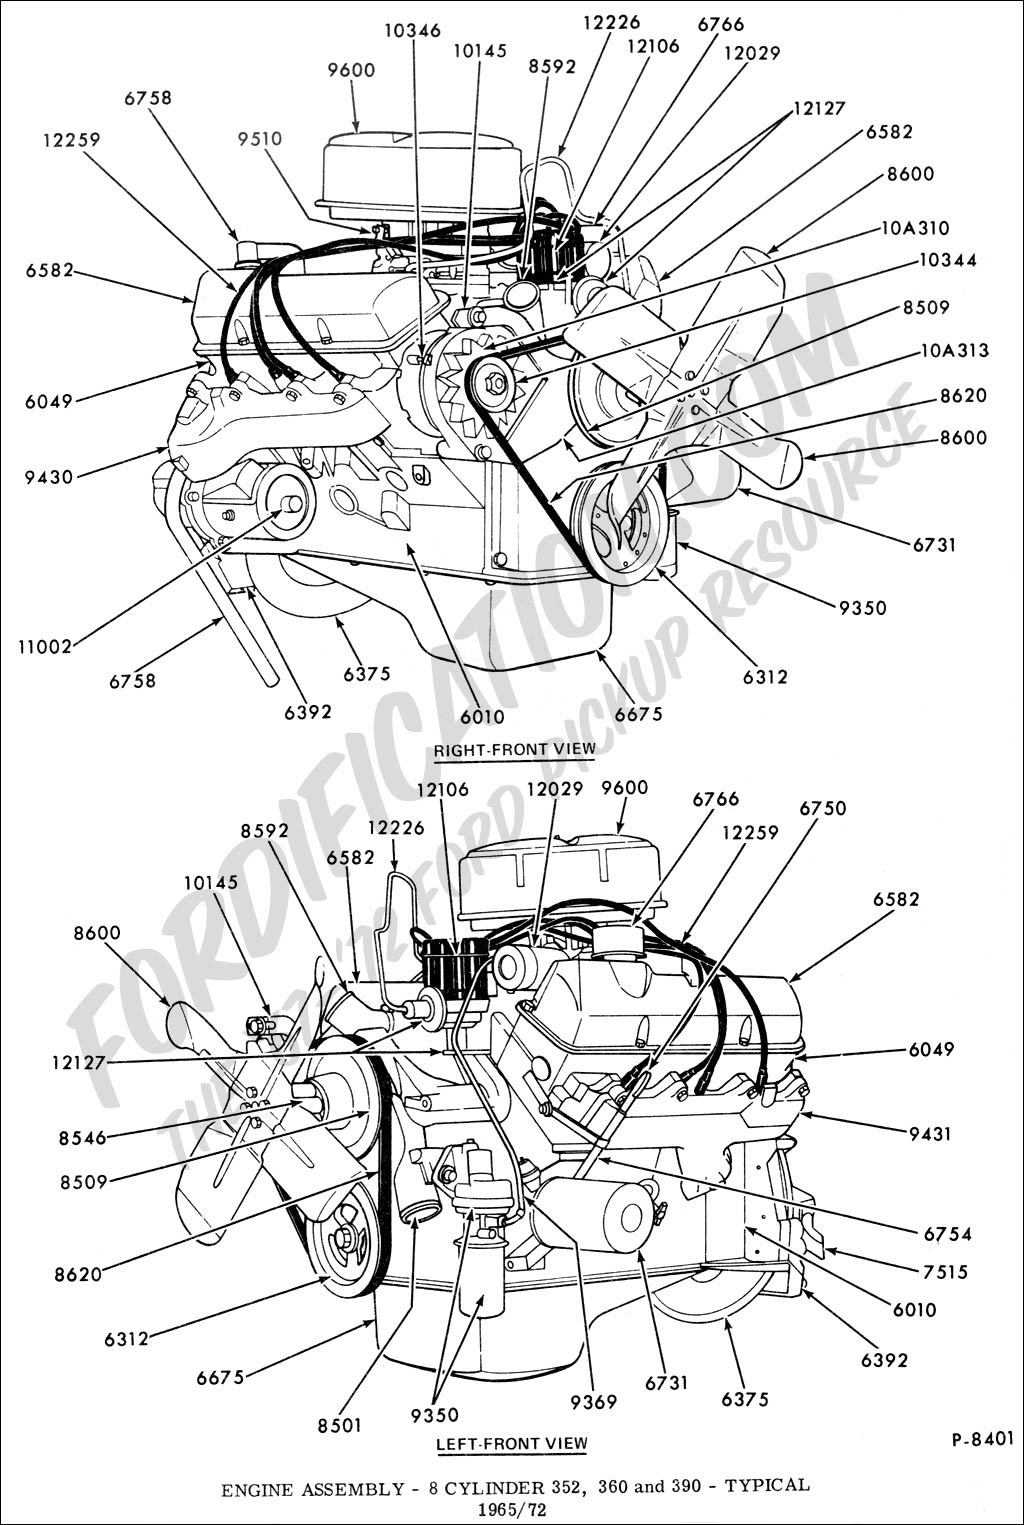 Ford Engine Diagram : Ford fe engine wiring free image for